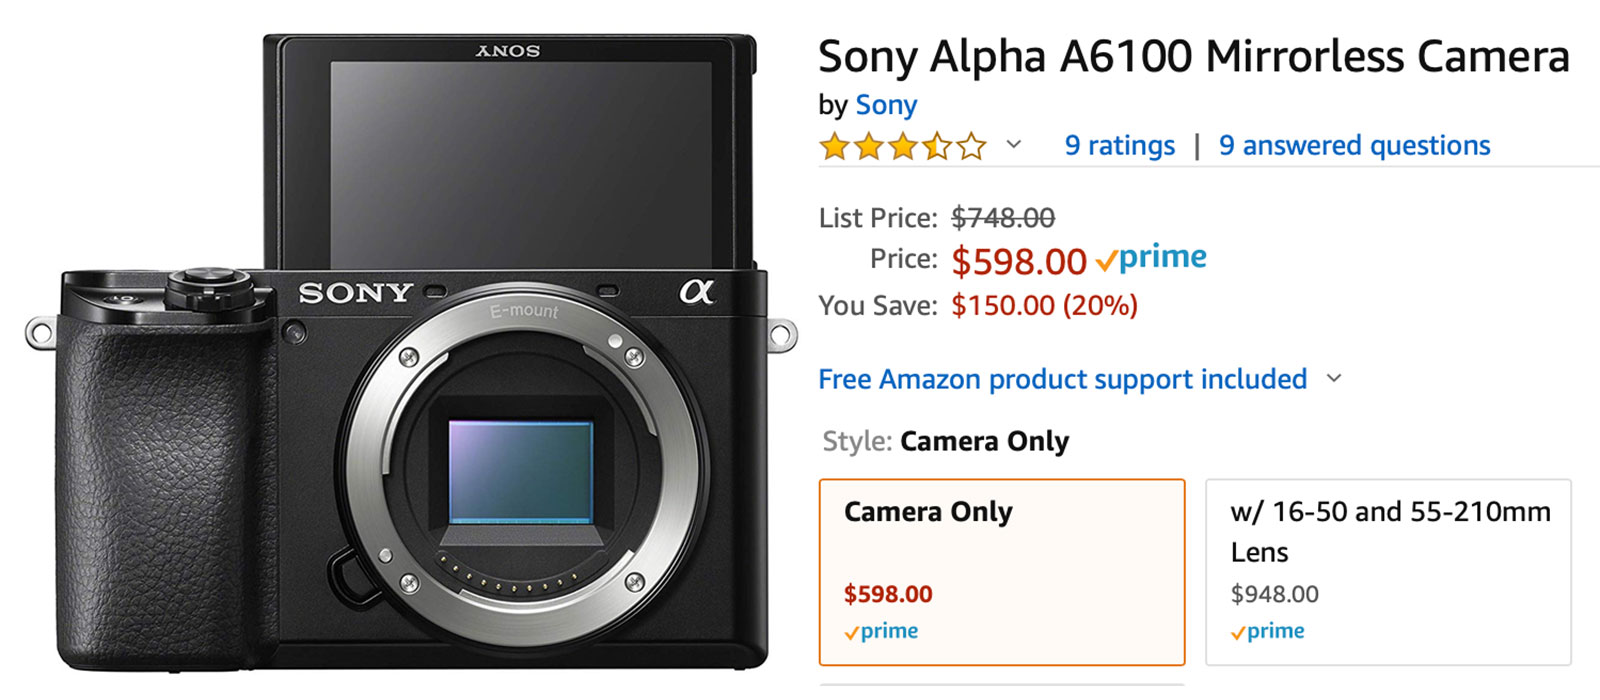 $150 Savings on Sony a6100 cameras